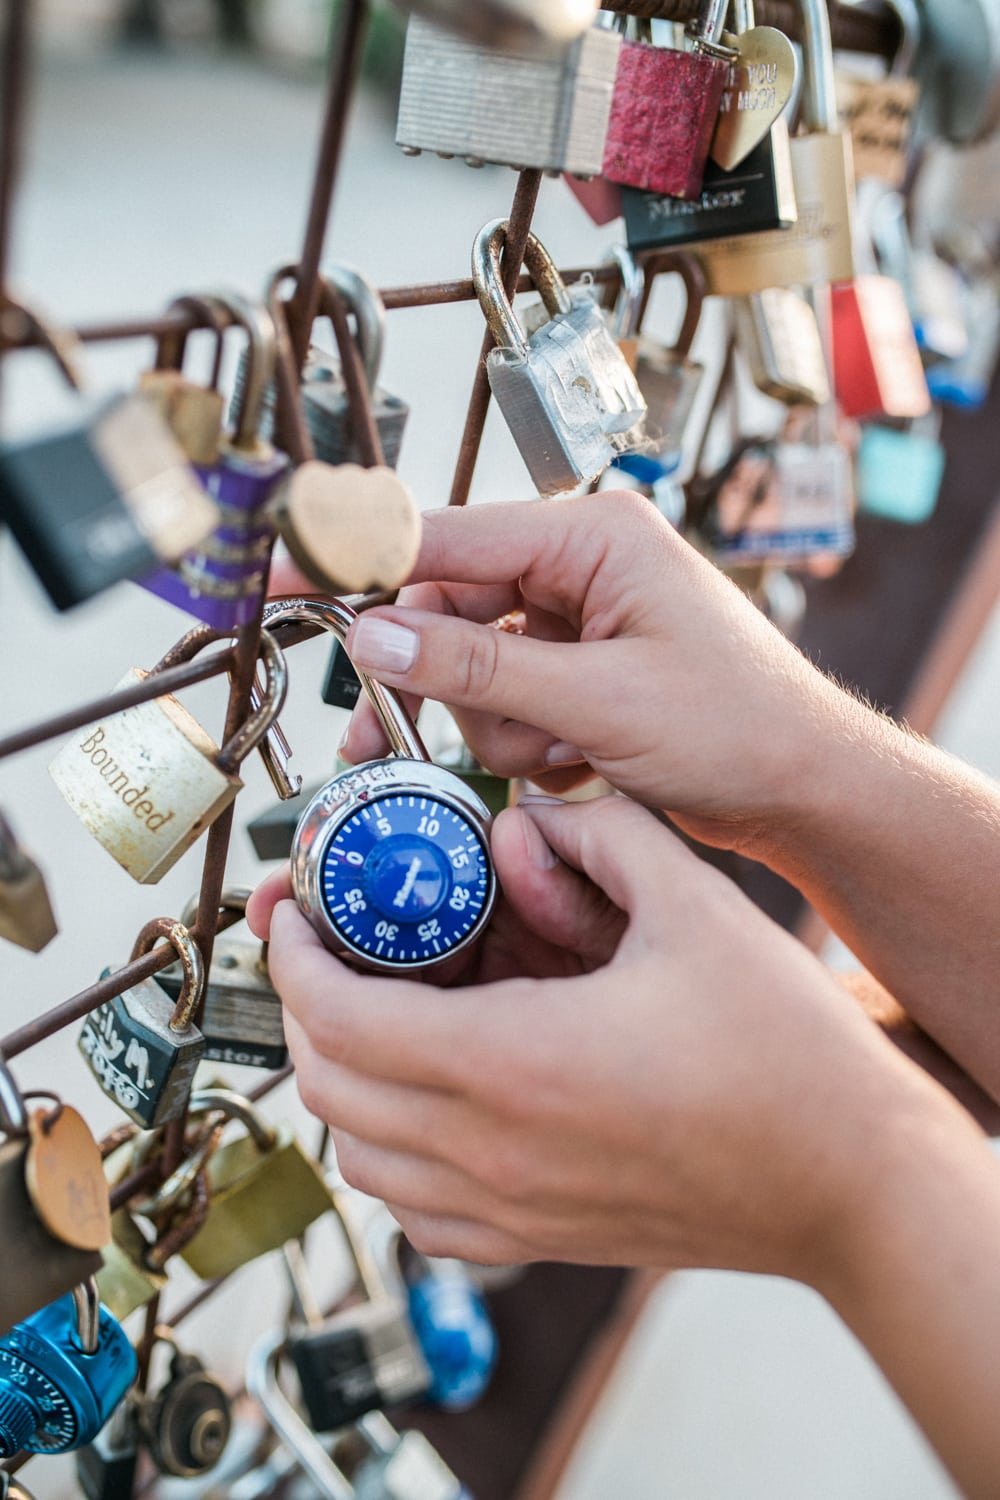 Couple attaching love lock to the heart sculpture in downtown Vista, California.